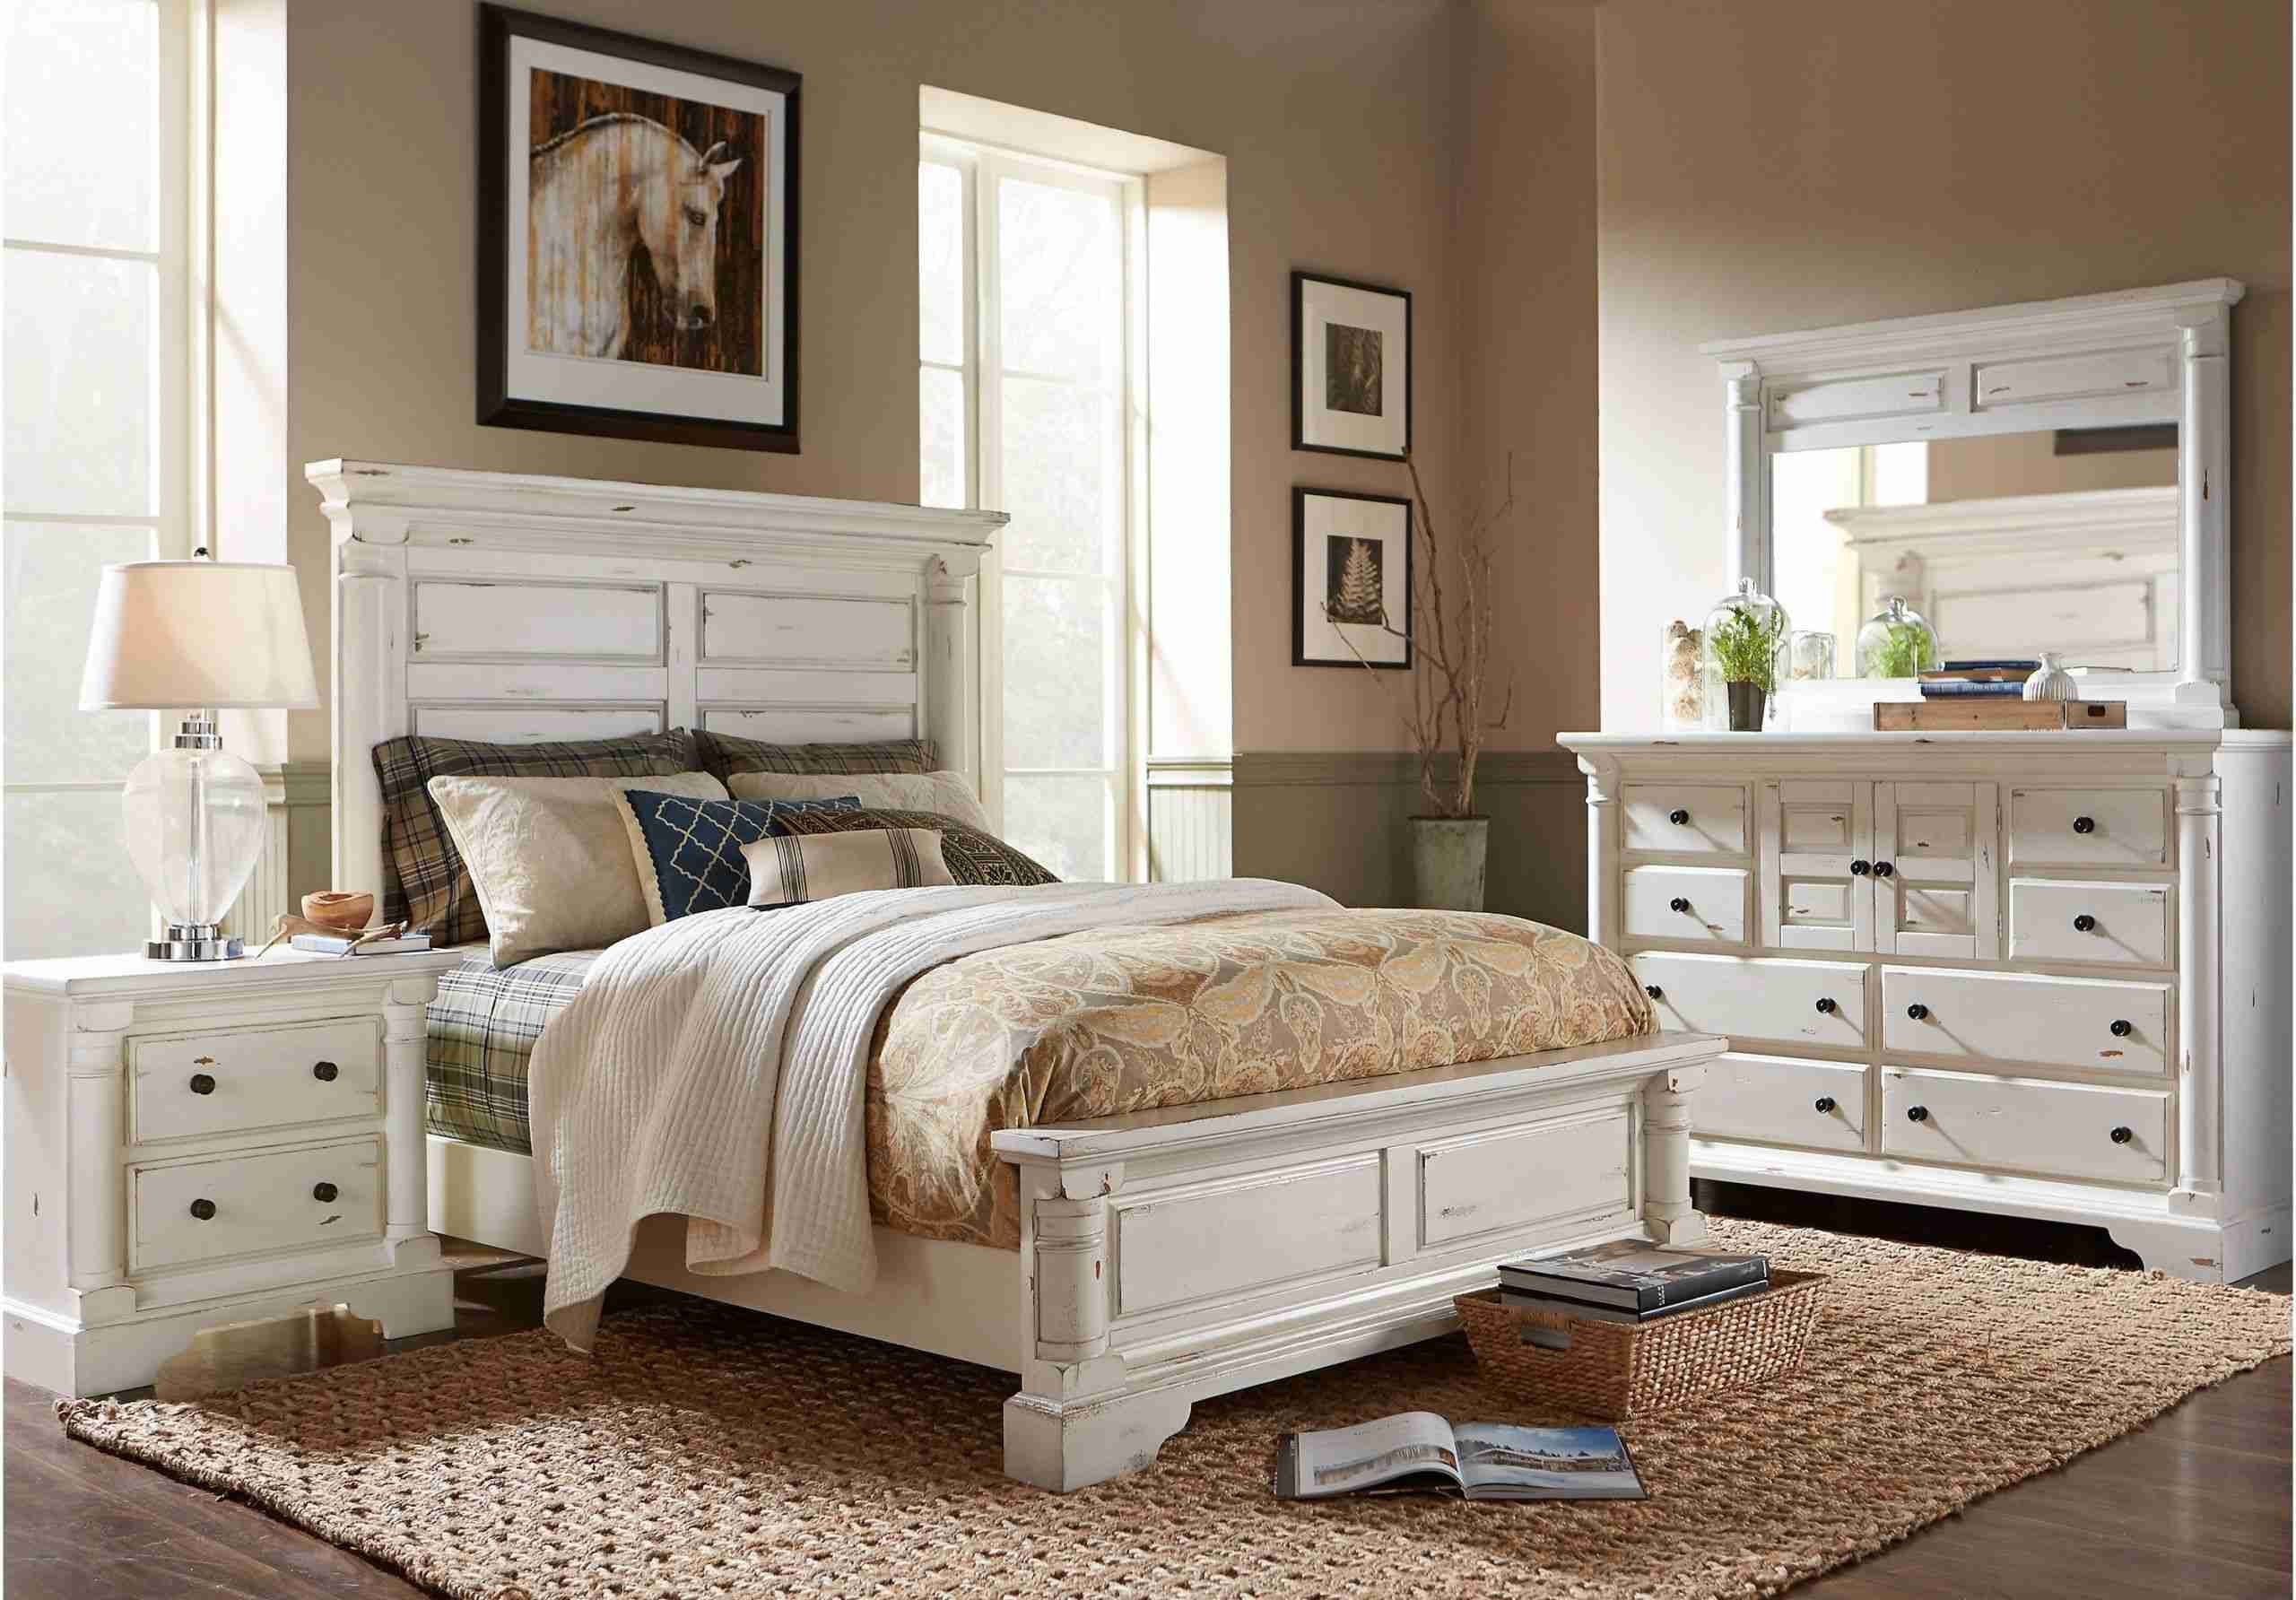 King Size Bedroom Suites Luxury Discount King Size Bedroom Furniture Sets Di 2020